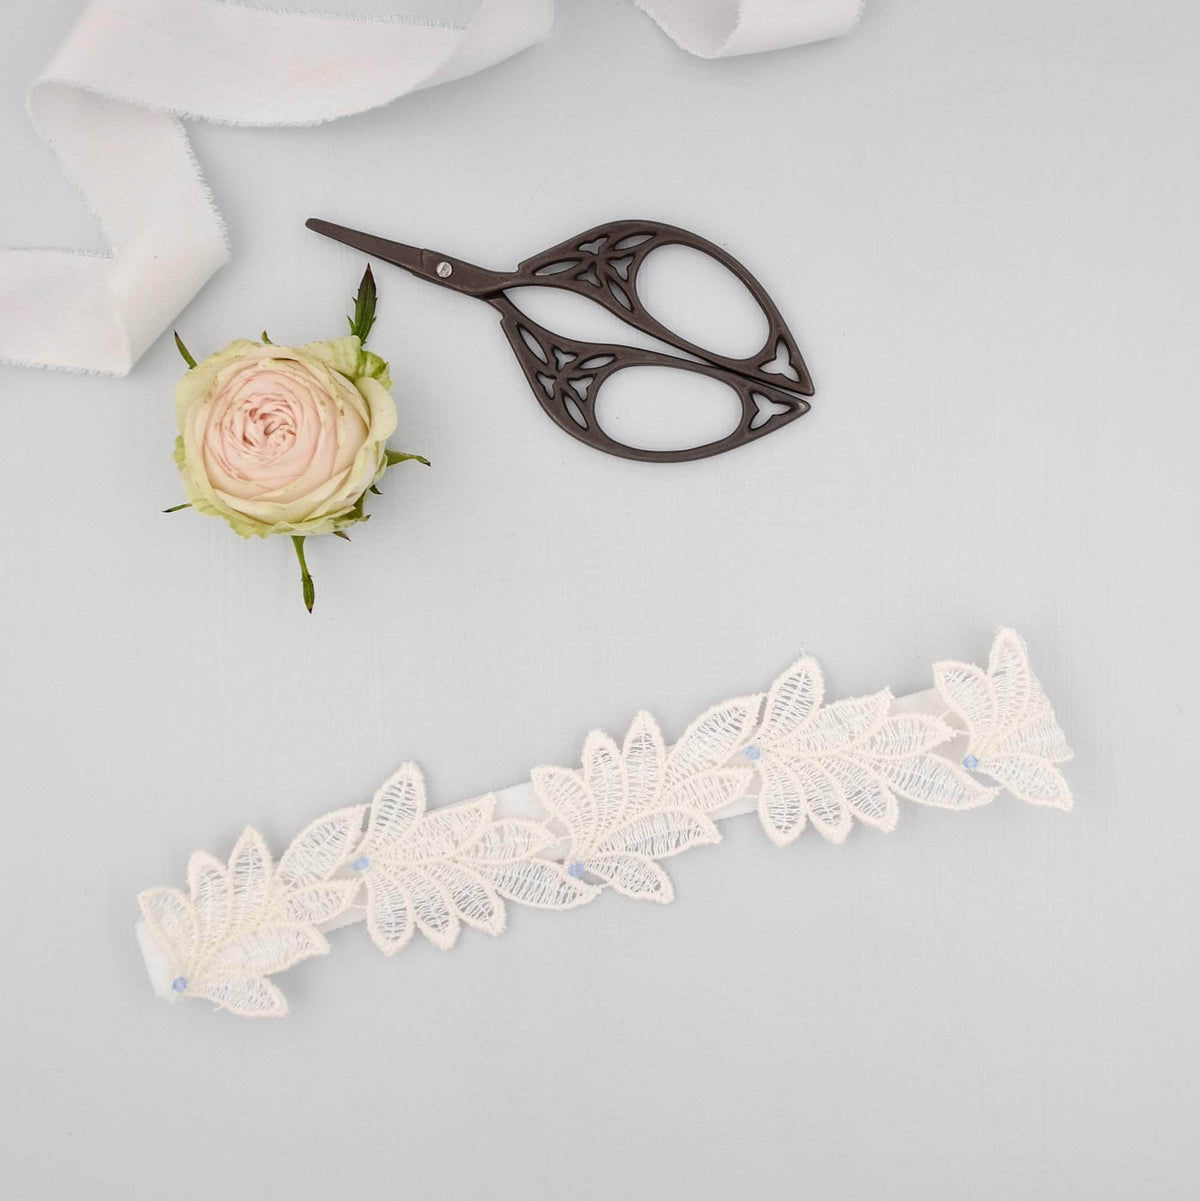 Wedding Garter Bridal garter set - Super sleek lace leaf wedding garter and matching toss garter - 'Elme'